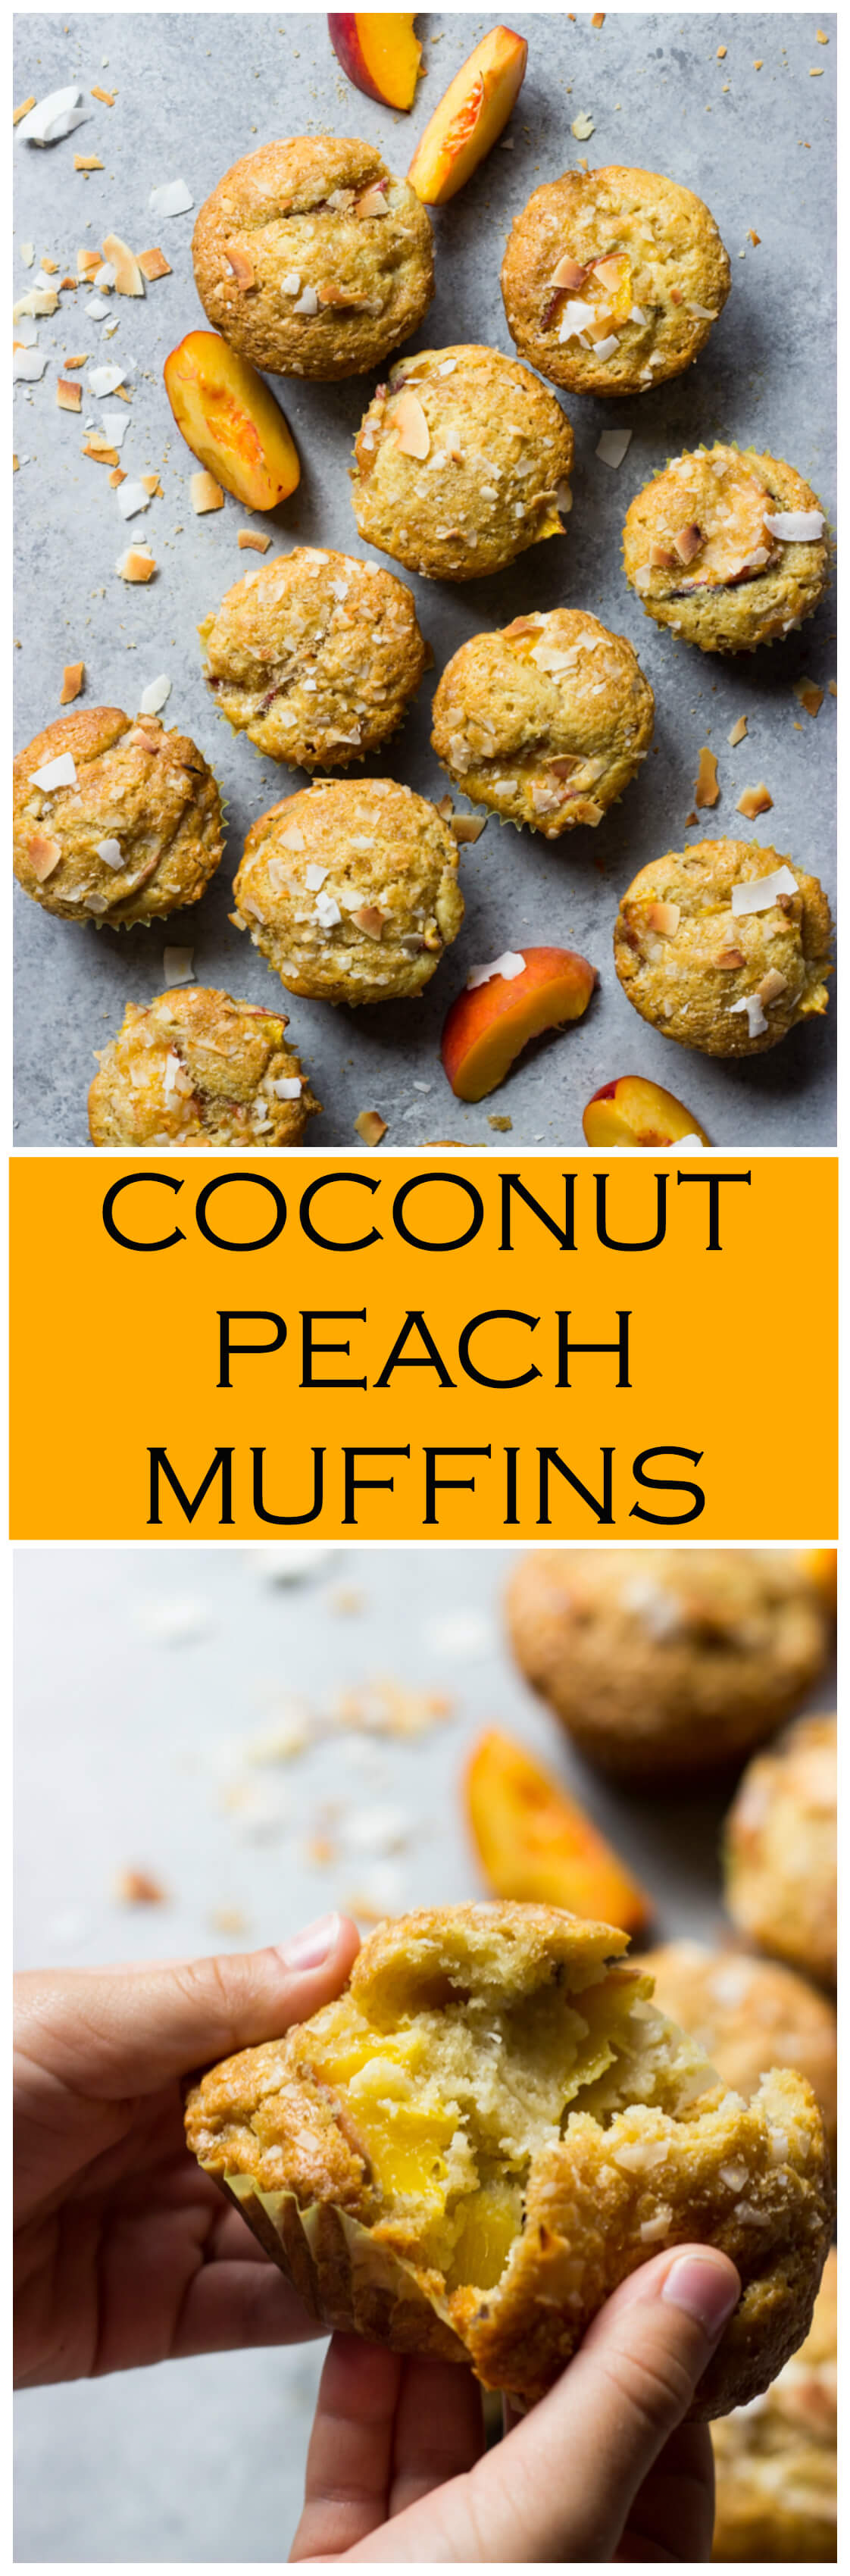 Coconut Peach Muffins - made with coconut oil and fresh peaches. These are by far the BEST muffins! | littlebroken.com @littlebroken